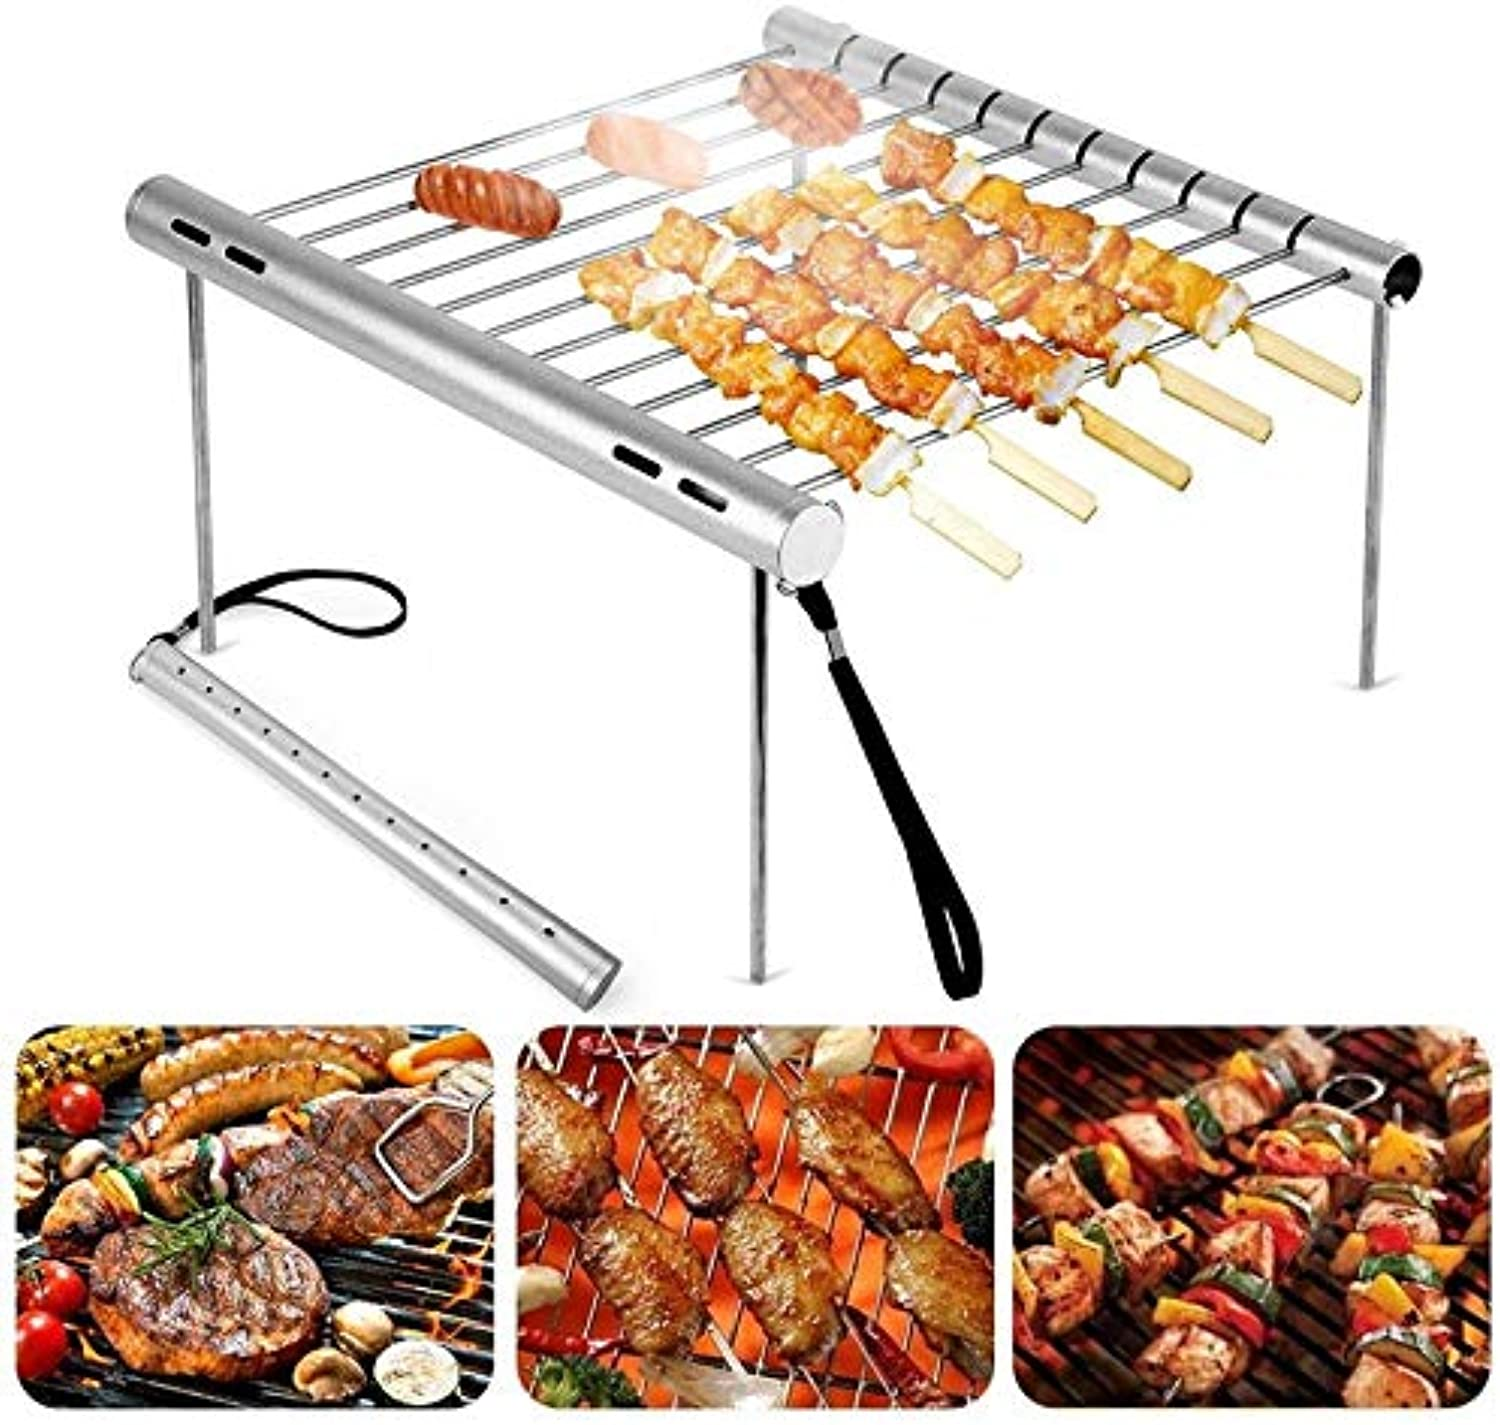 Wultia  Portable Folding Stainless Steel Barbecue Grilling Basket Clip for Fish Meat Vegetables Foods BBQ Grill Tool Accessories